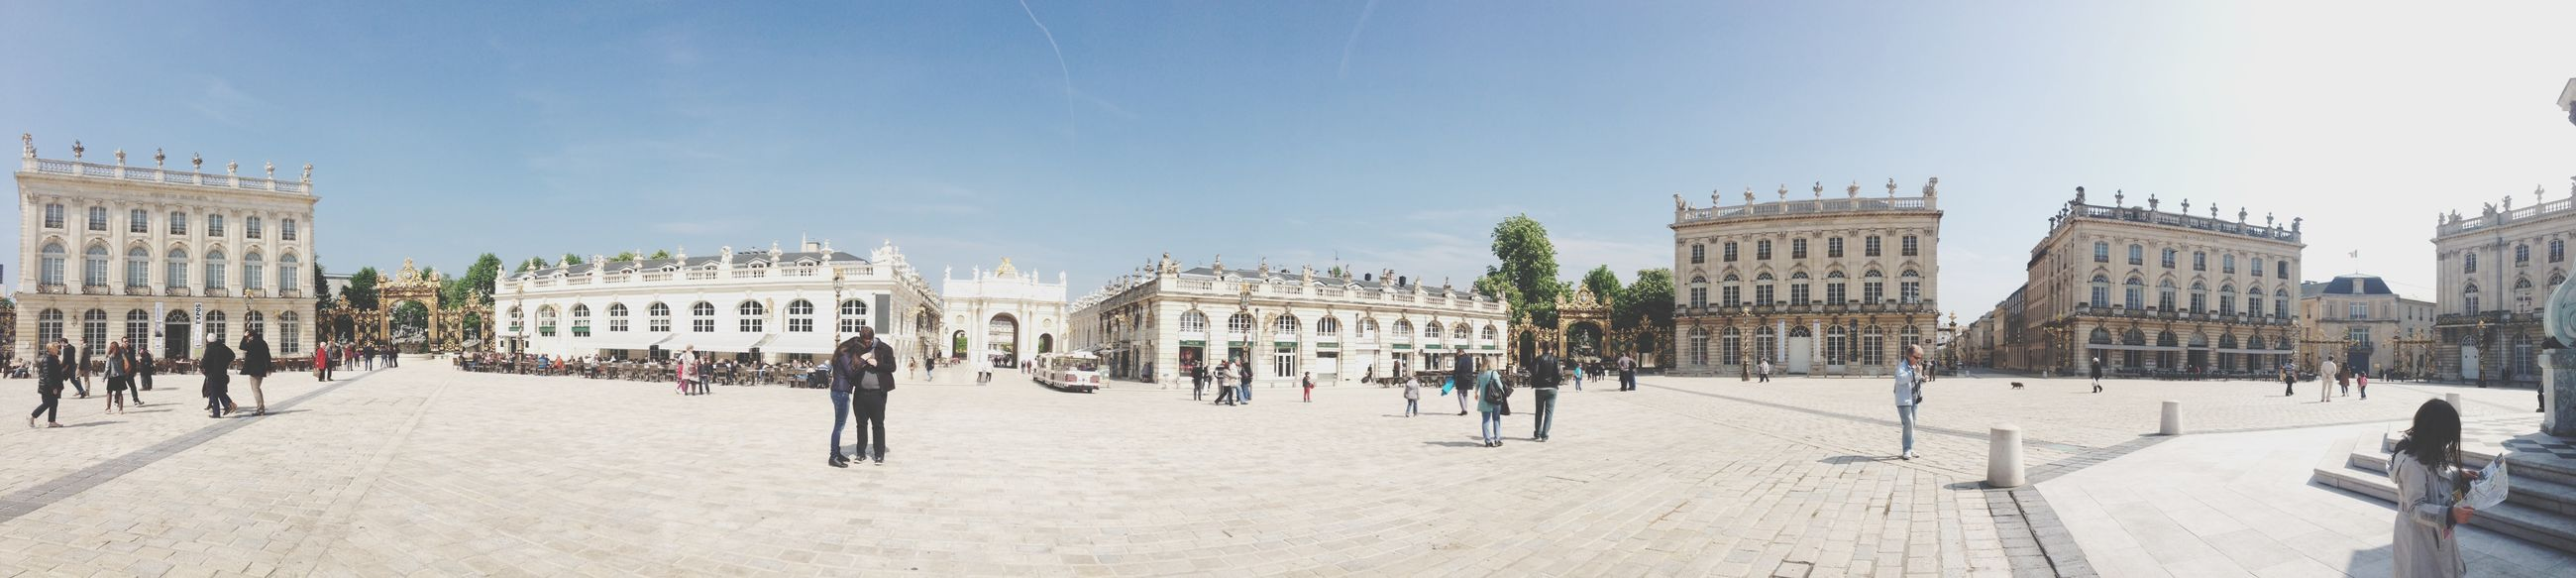 architecture, building exterior, built structure, sky, walking, men, sunlight, person, incidental people, clear sky, large group of people, lifestyles, tourist, day, town square, shadow, blue, city, leisure activity